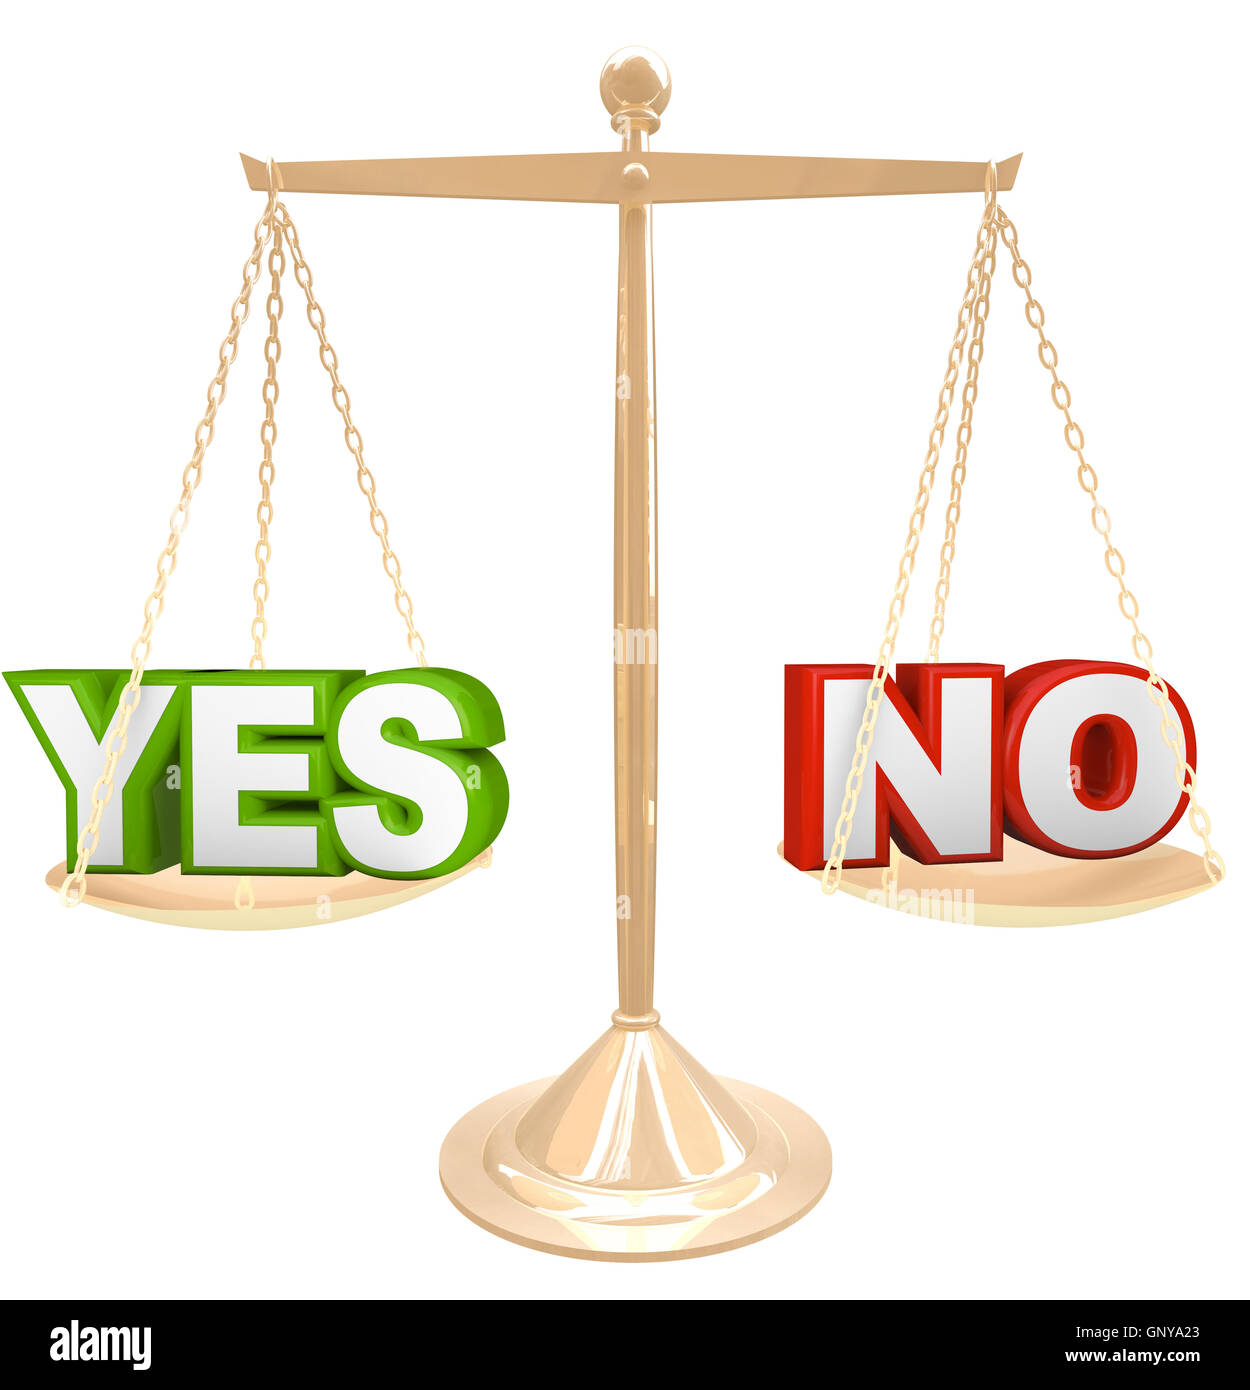 Yes Vs No Words on Scale Weighing Options to Answer - Stock Image